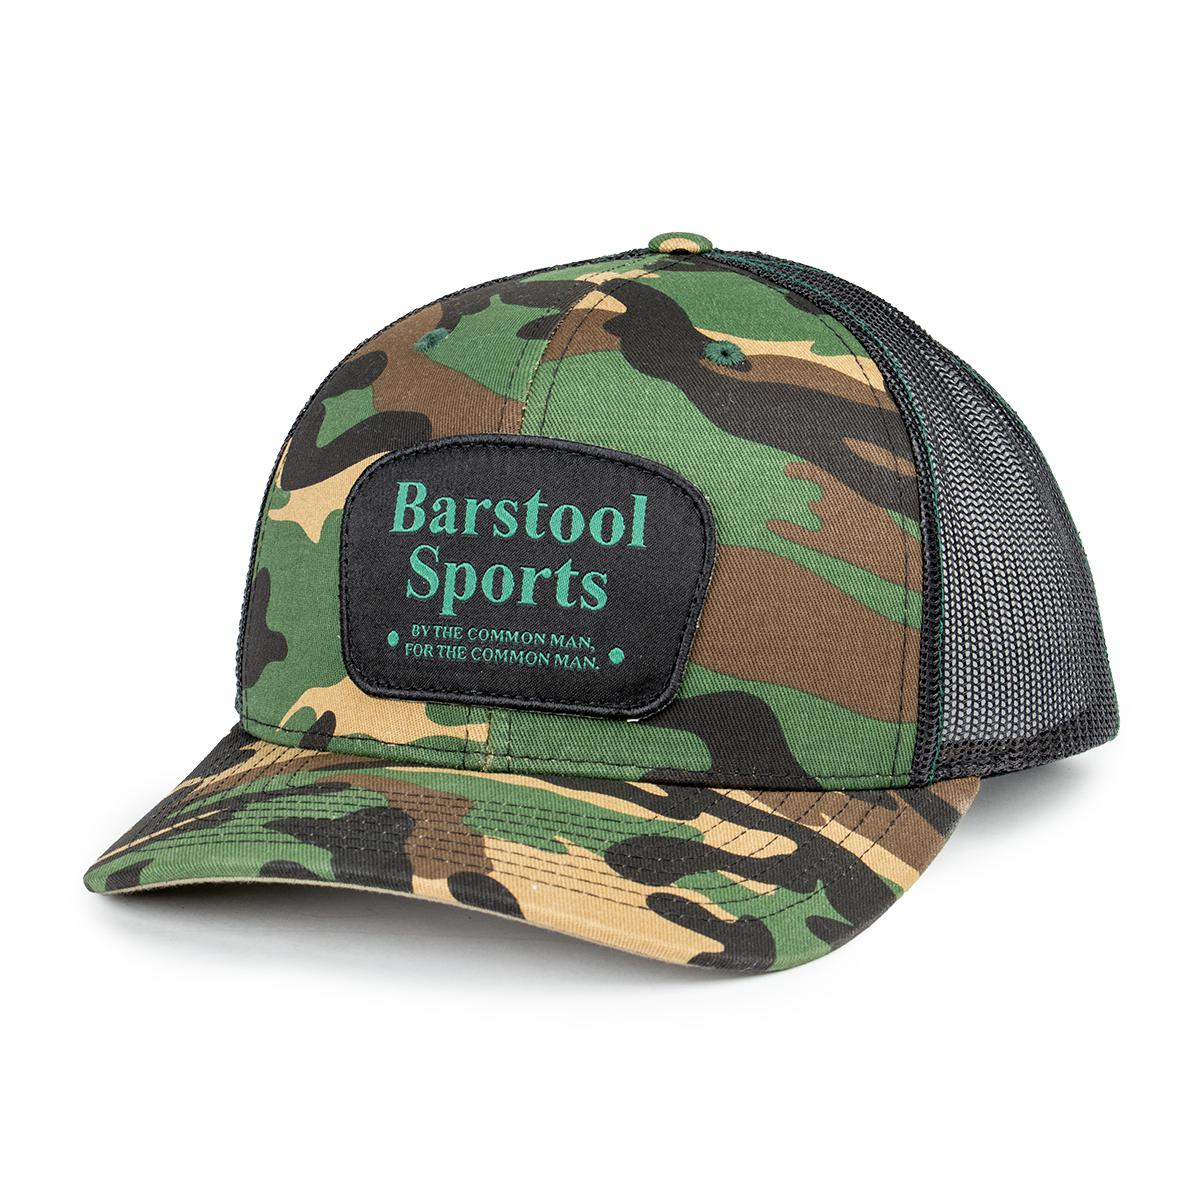 Barstool Sports Richardson Camo Trucker Hat